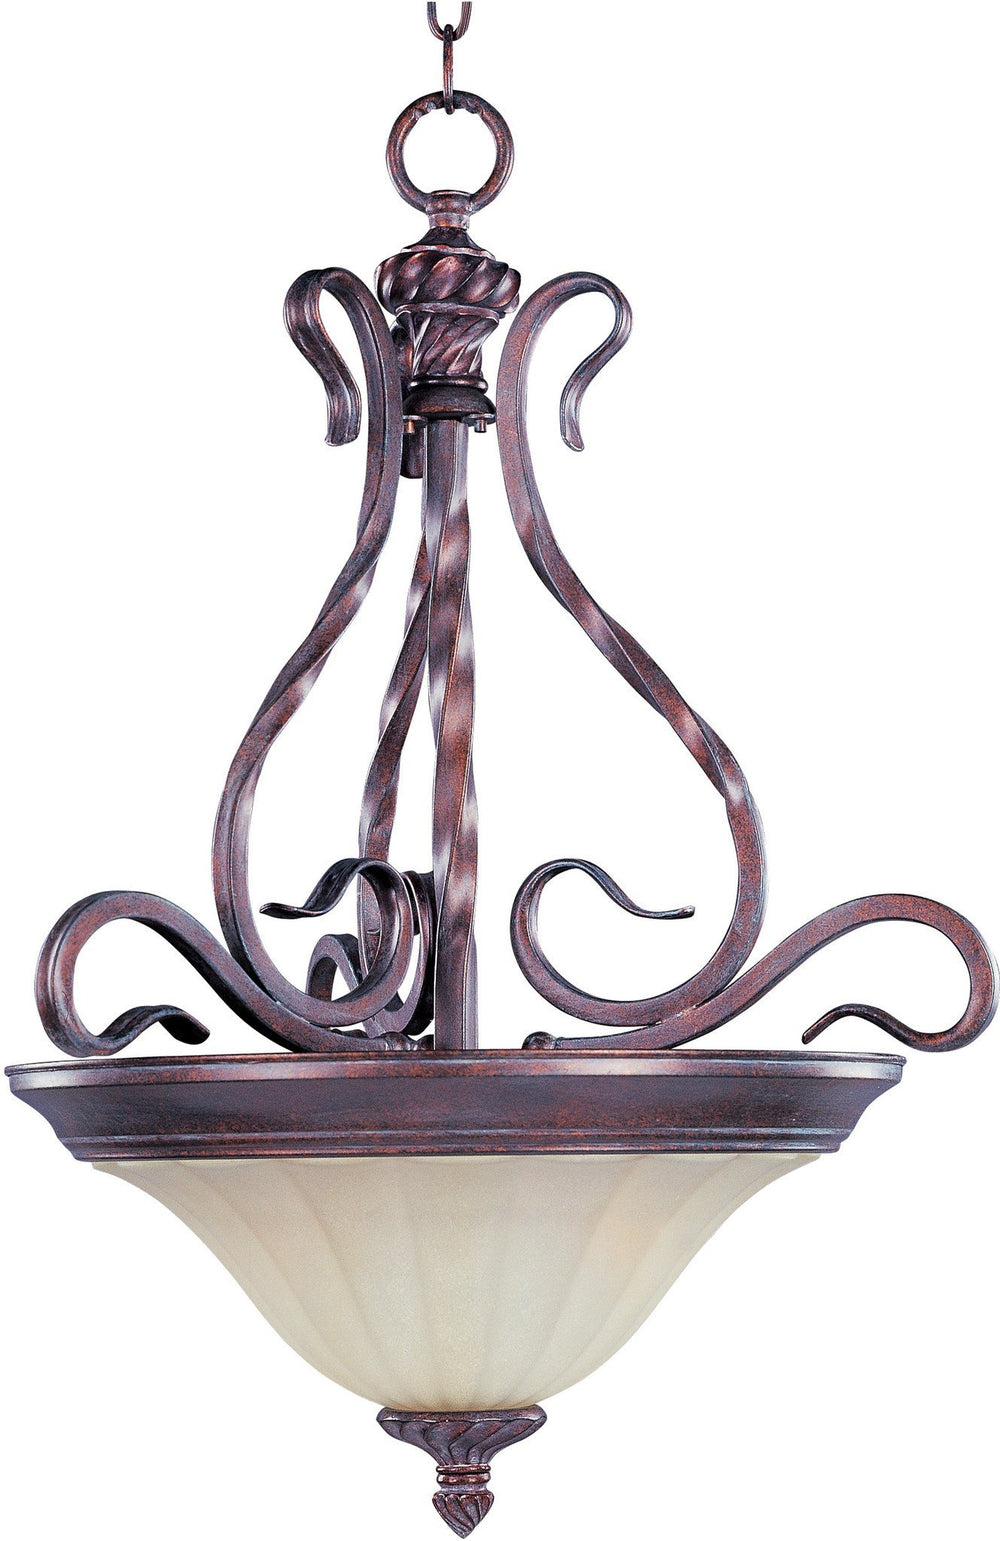 2772SVGB Maxim Via Roma 2-Light Invert Bowl Pendant